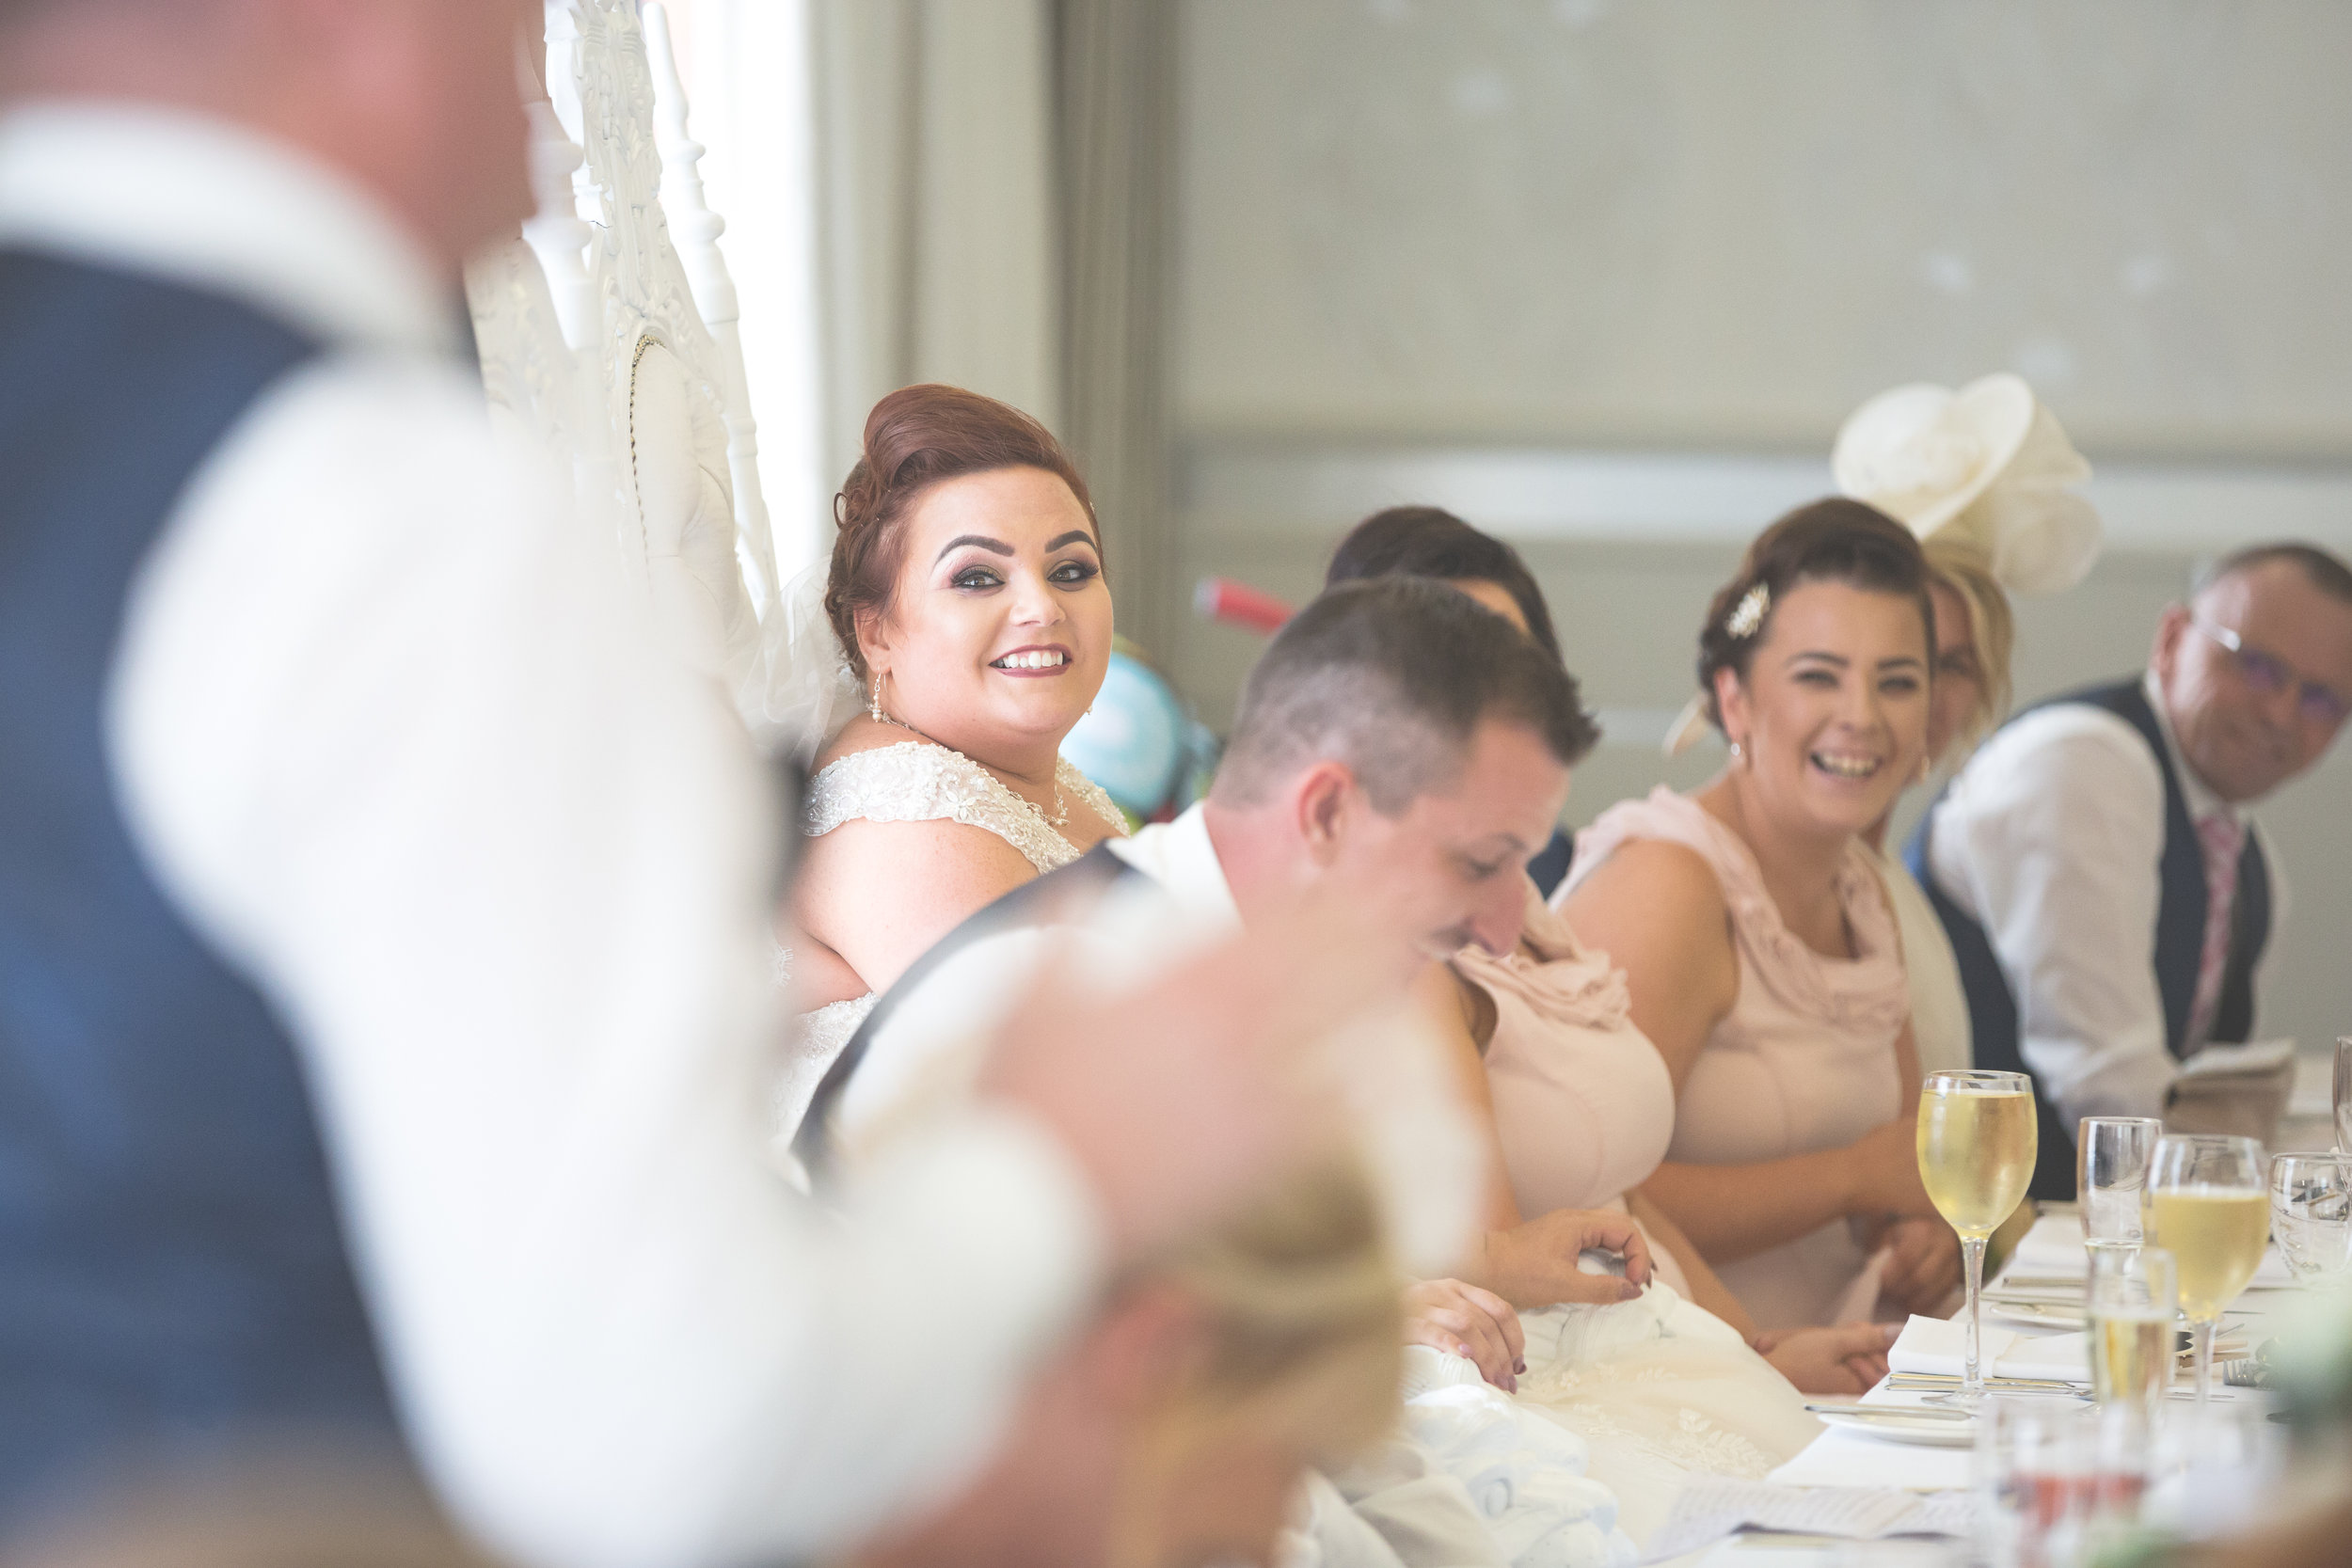 Antoinette & Stephen - Speeches | Brian McEwan Photography | Wedding Photographer Northern Ireland 28.jpg